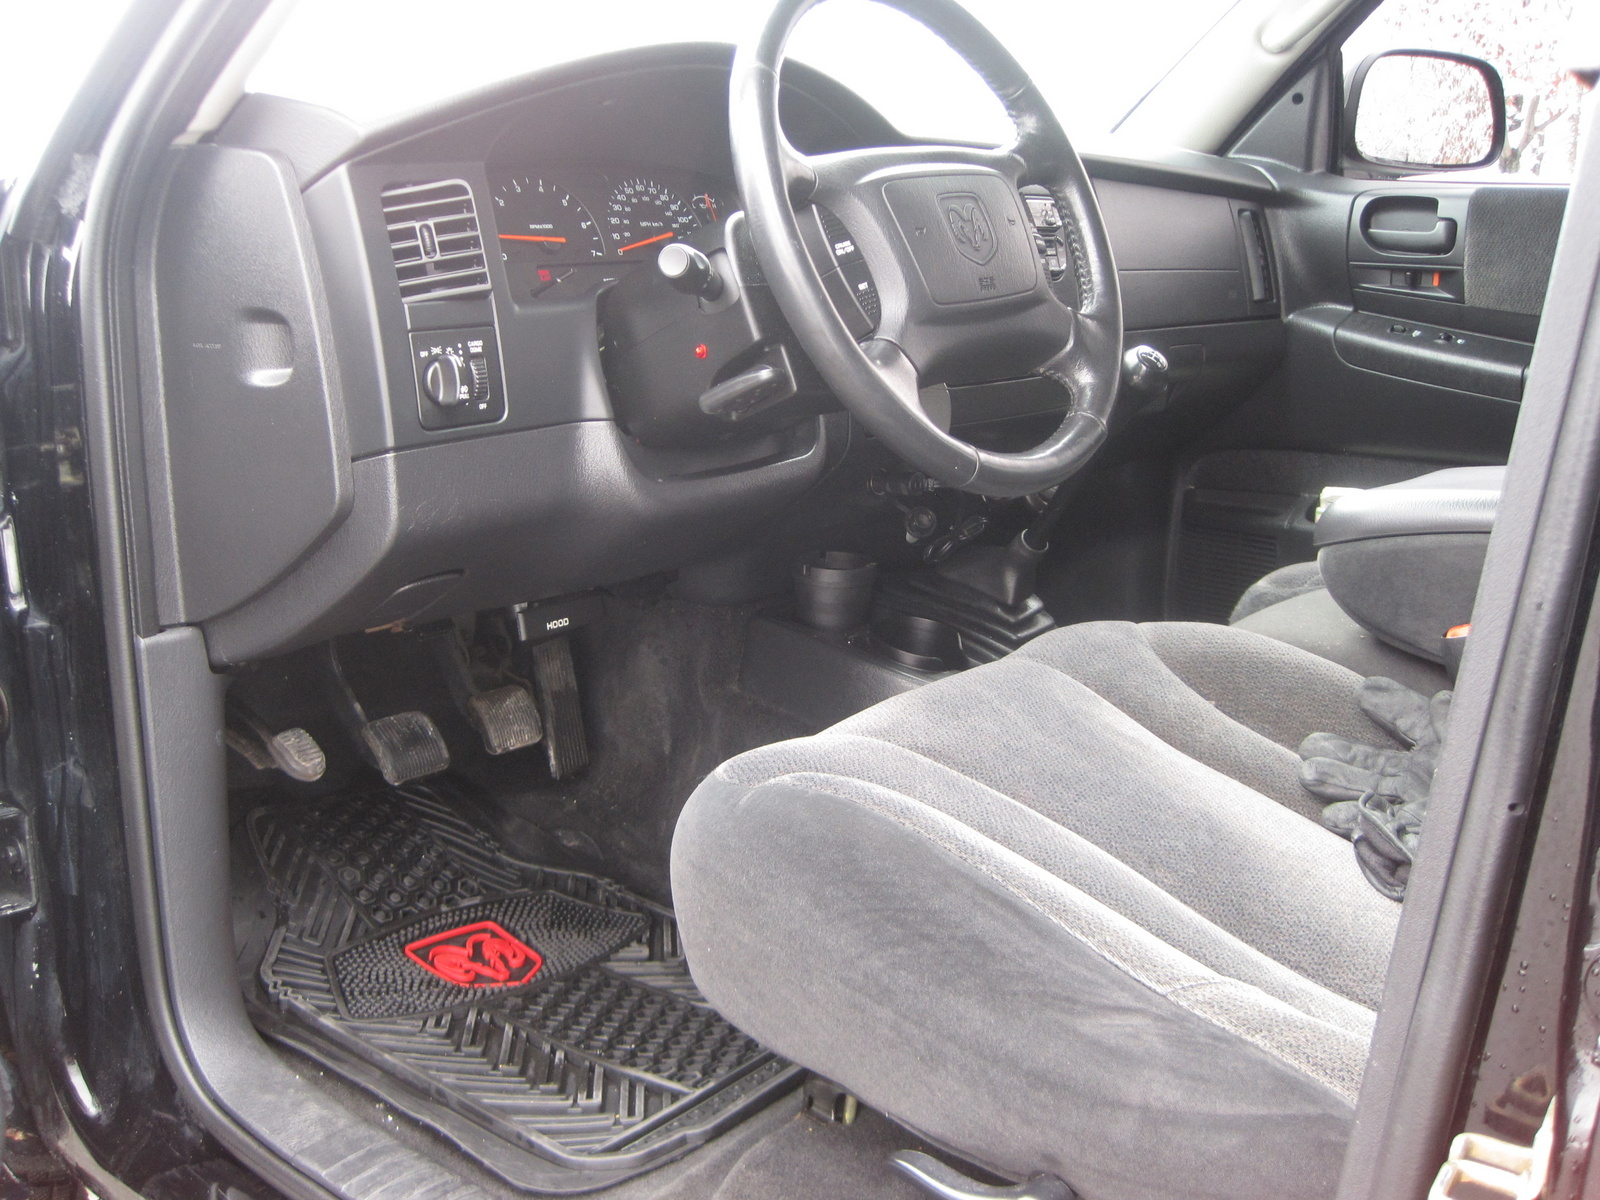 2004 dodge dakota interior pictures cargurus. Black Bedroom Furniture Sets. Home Design Ideas